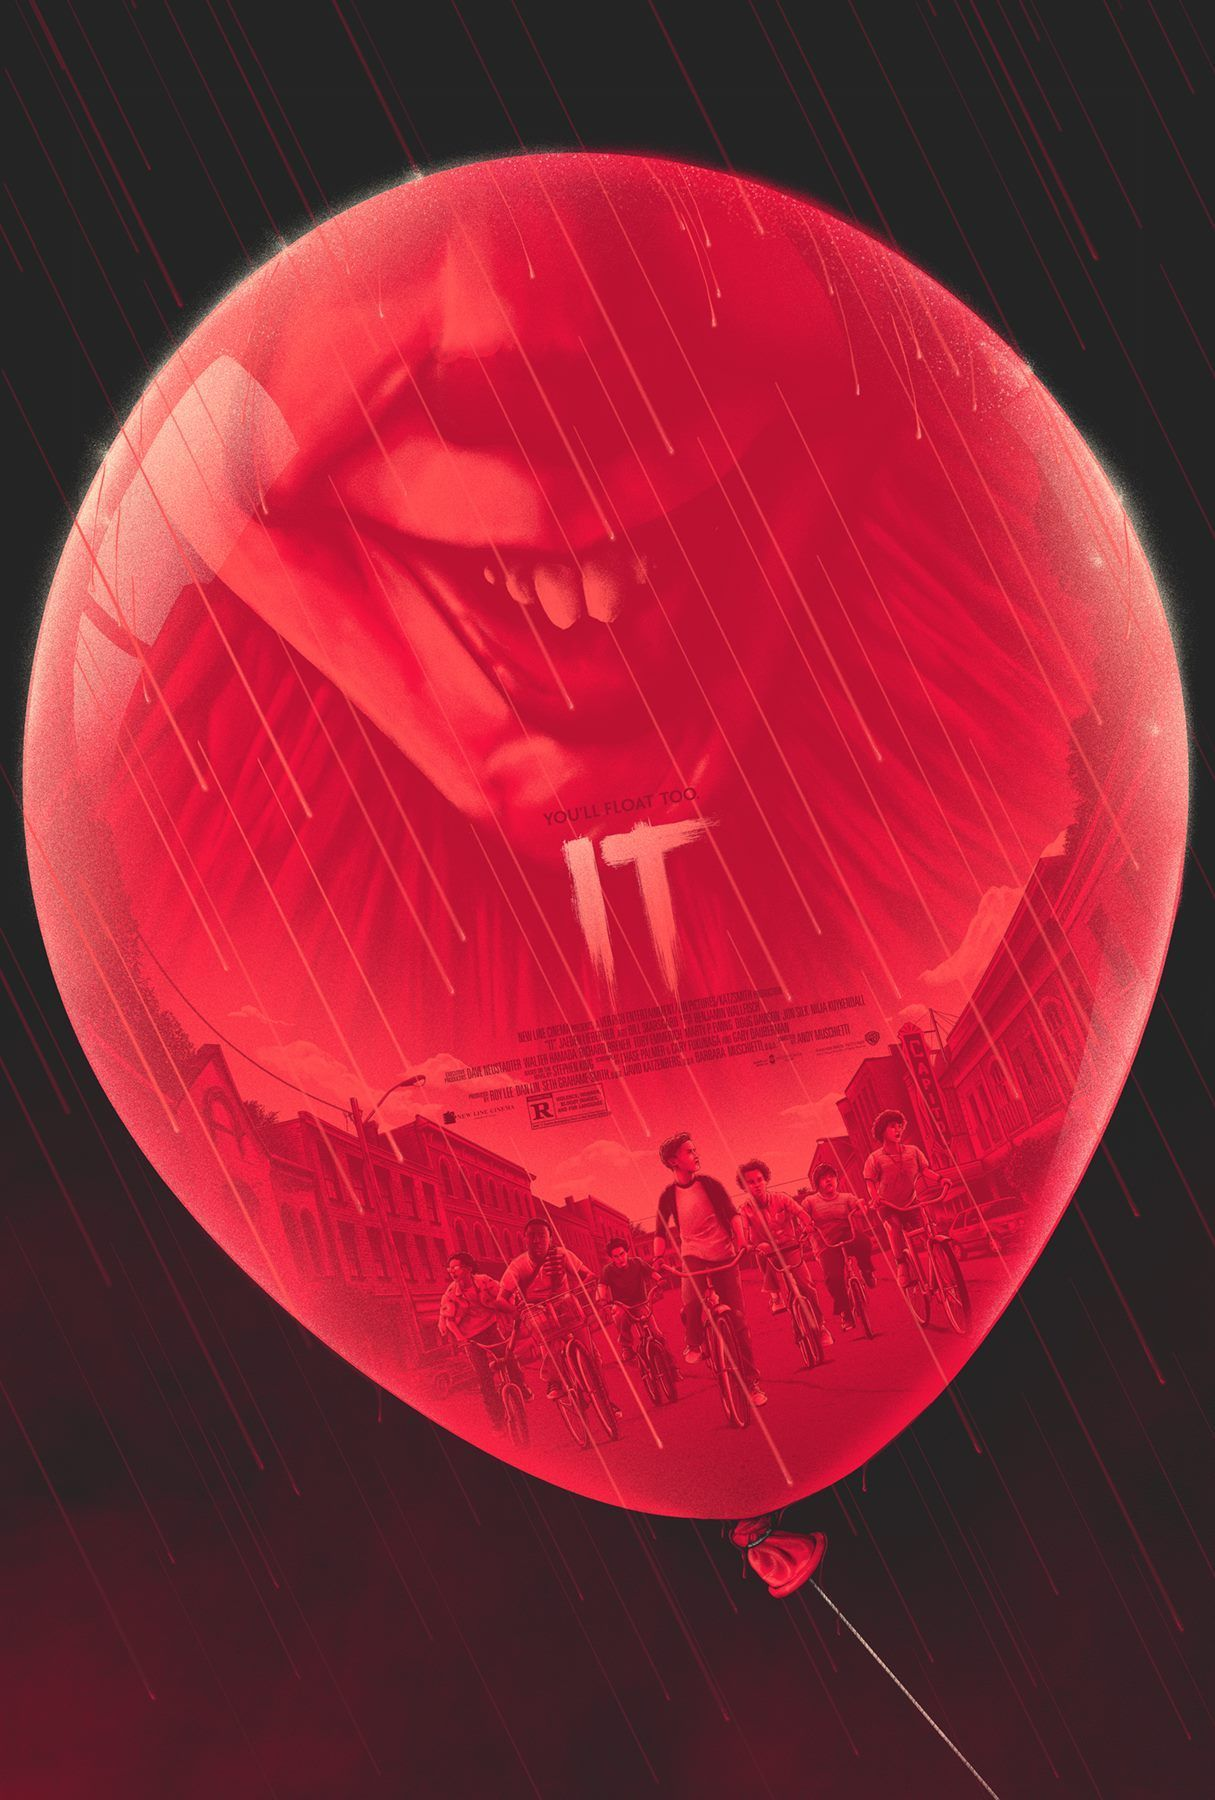 It 2017 Hd Wallpaper From Gallsourcecom Love Horror Part 20